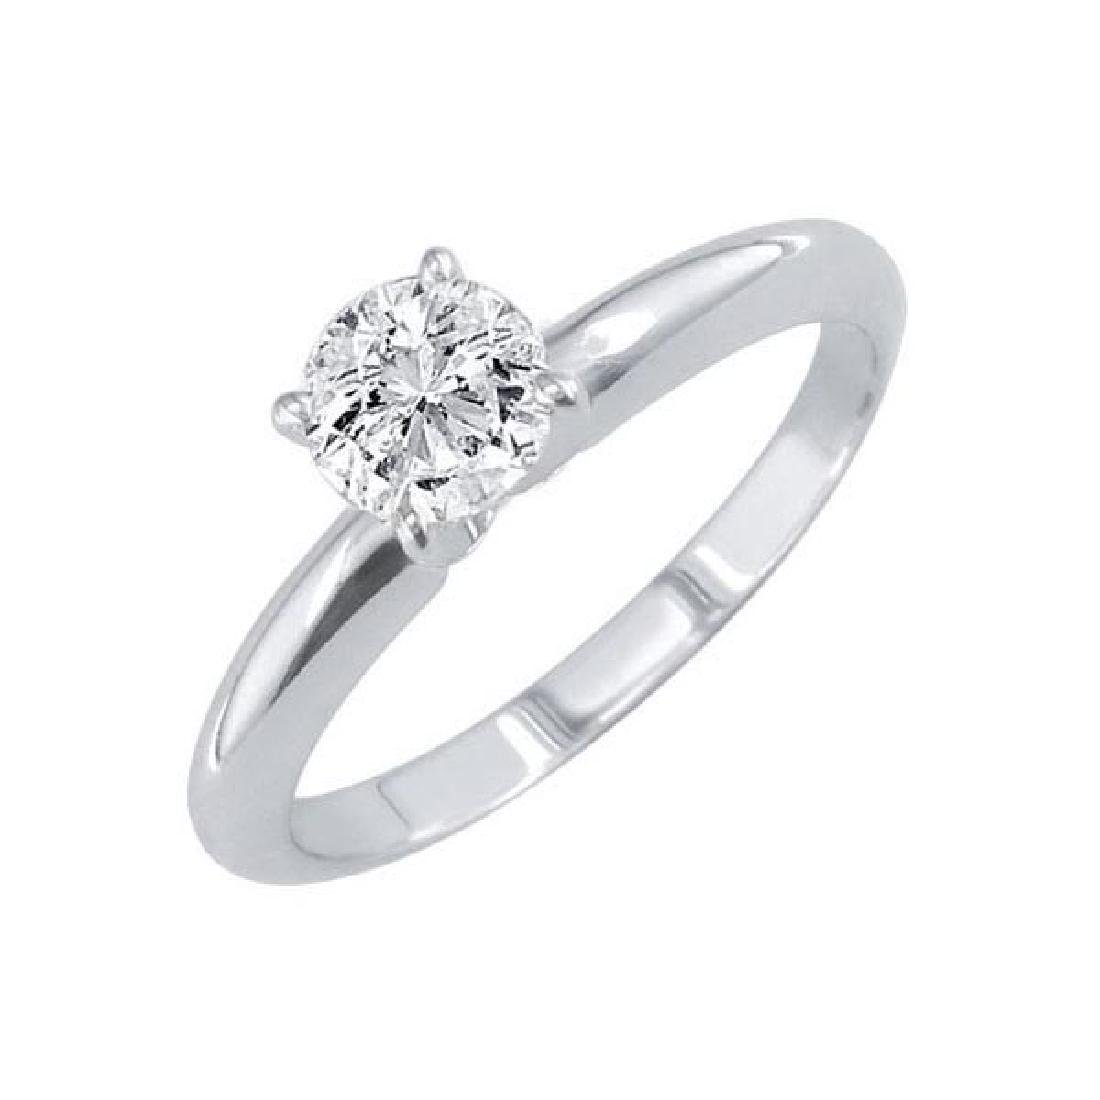 Certified 0.63 CTW Round Diamond Solitaire 14k Ring D/S